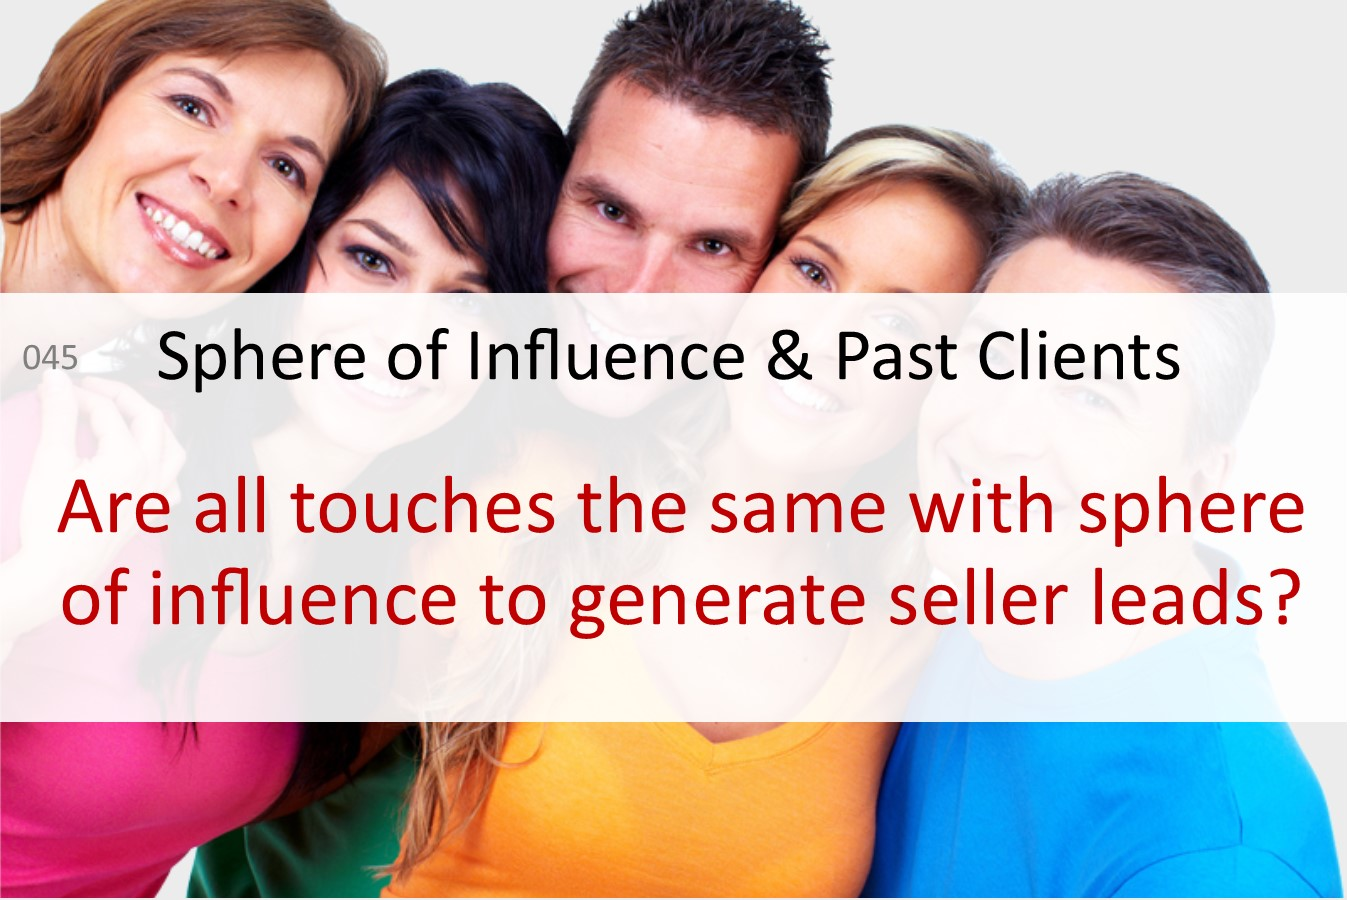 sphere of influence past clients seller leads 33 touch